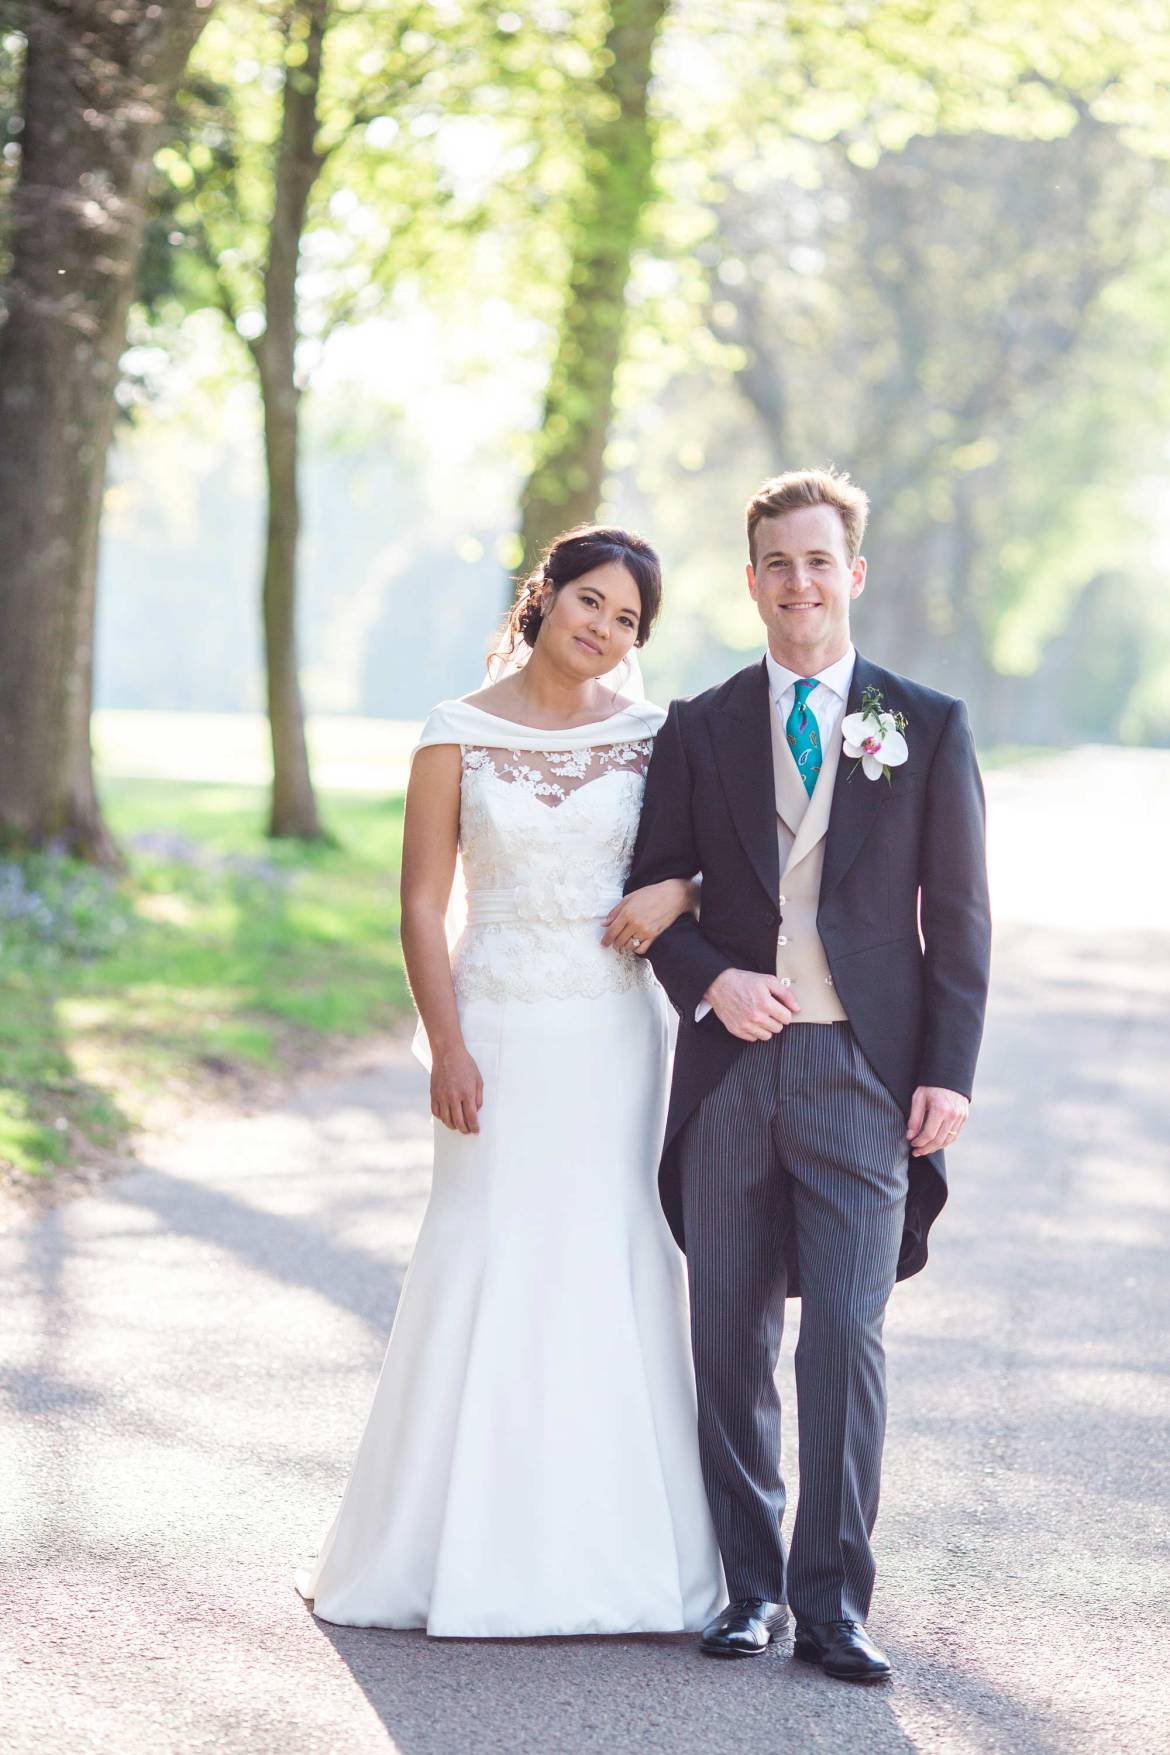 Spring wedding at Goodwood House